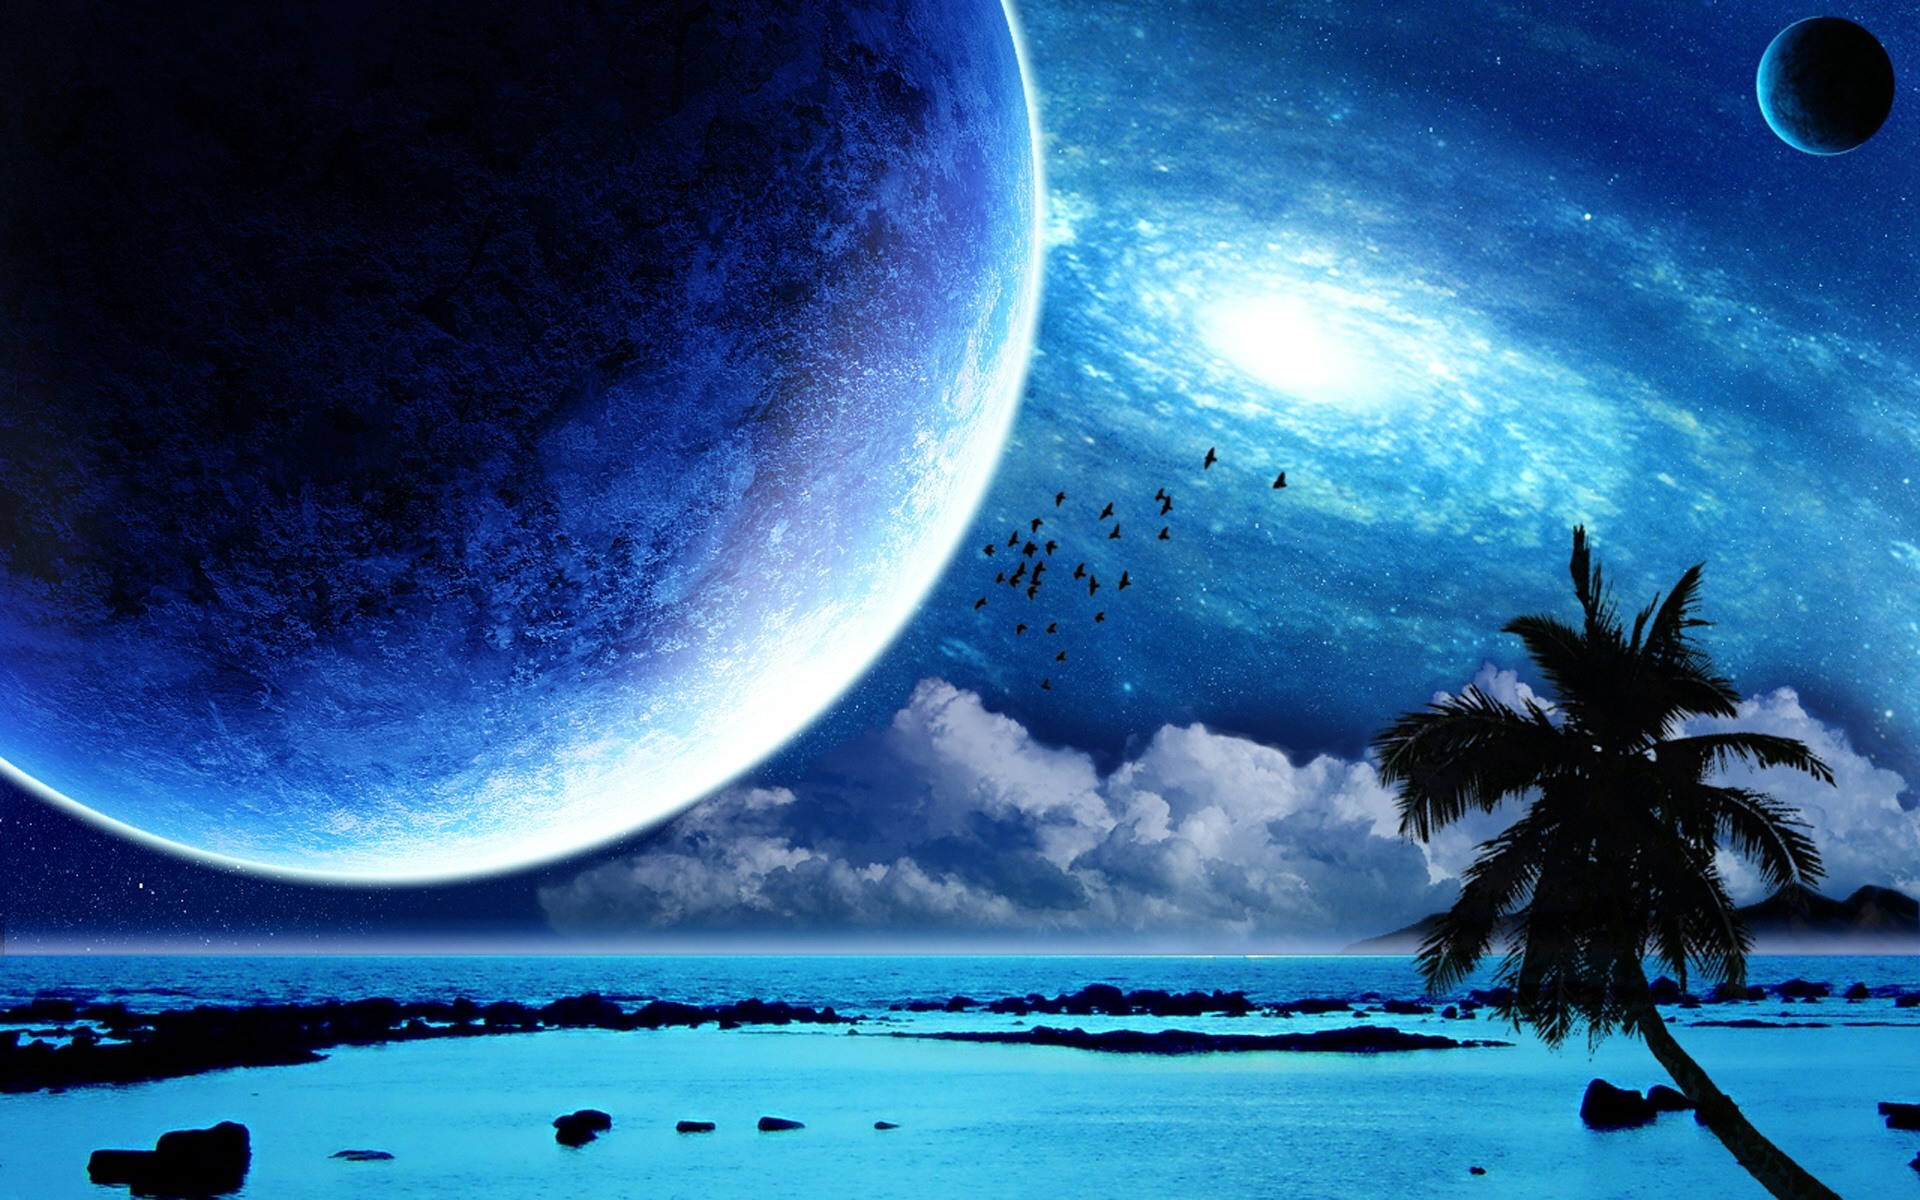 tropical desktop wallpaper island desktopia bazzza interstellar 1920x1200